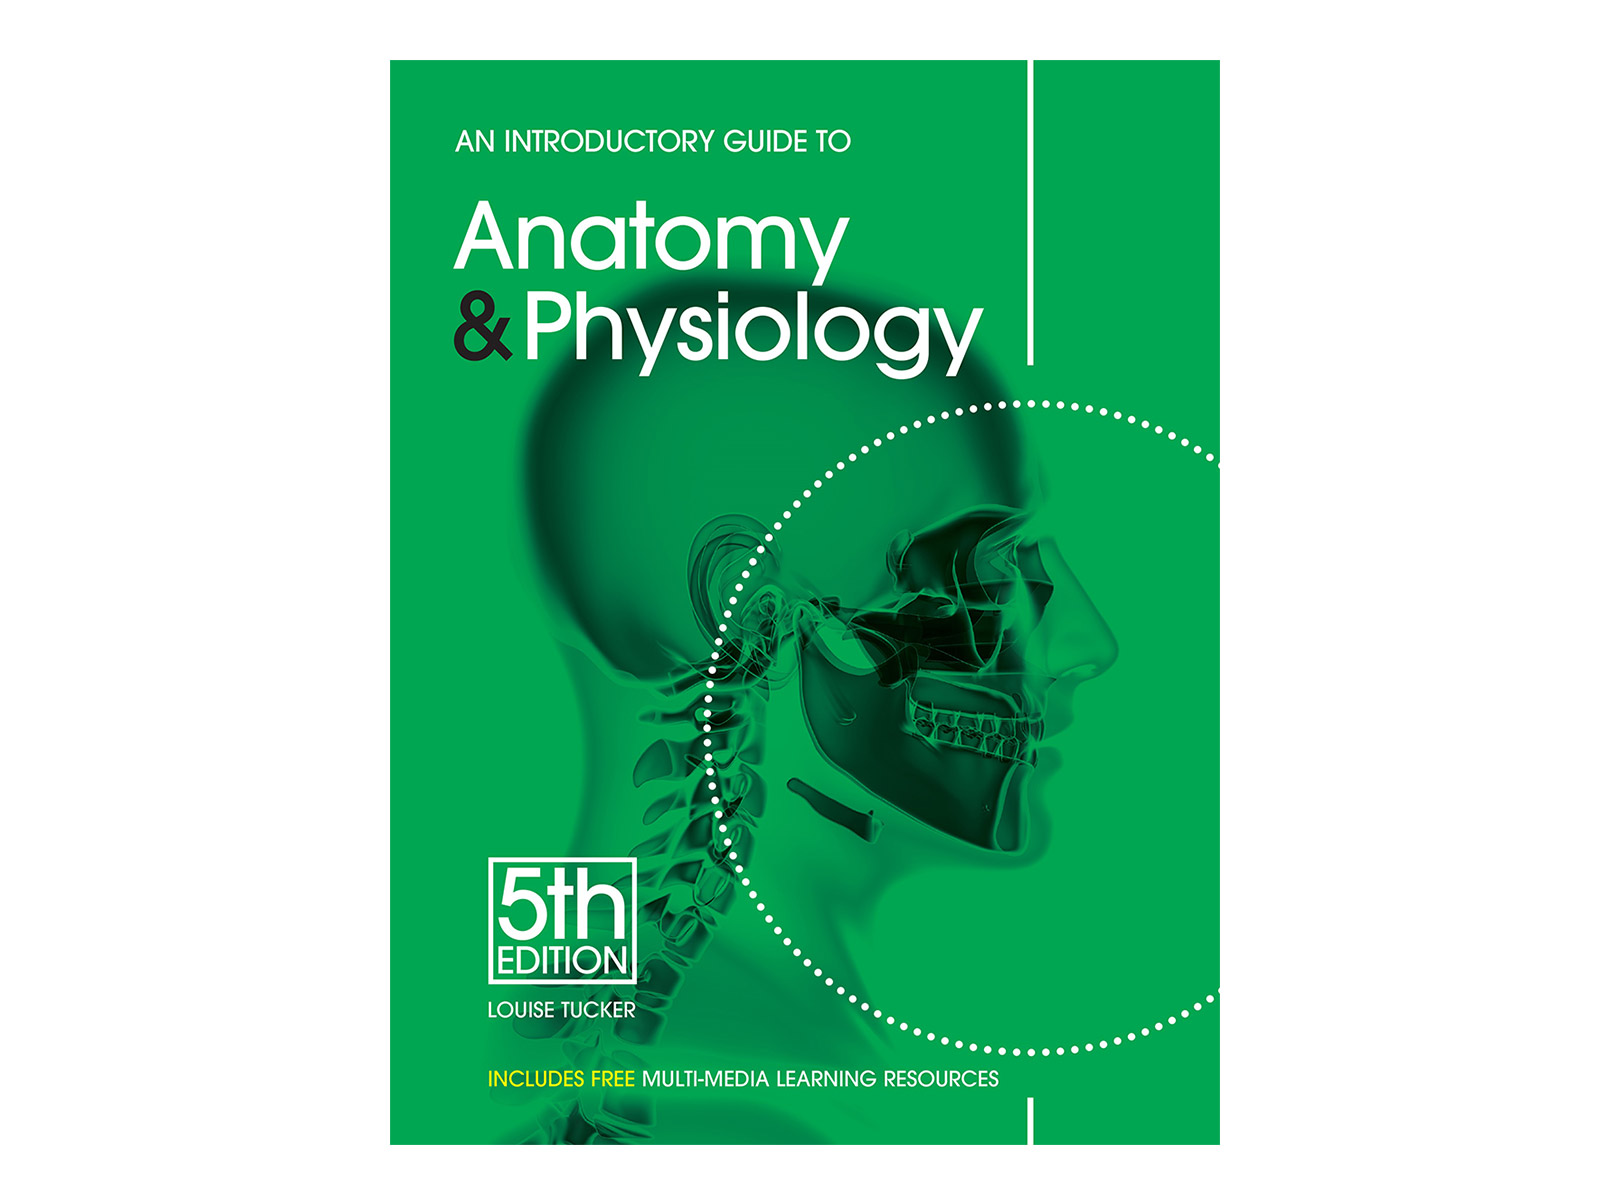 Buy An Introductory Guide to Anatomy & Physiology